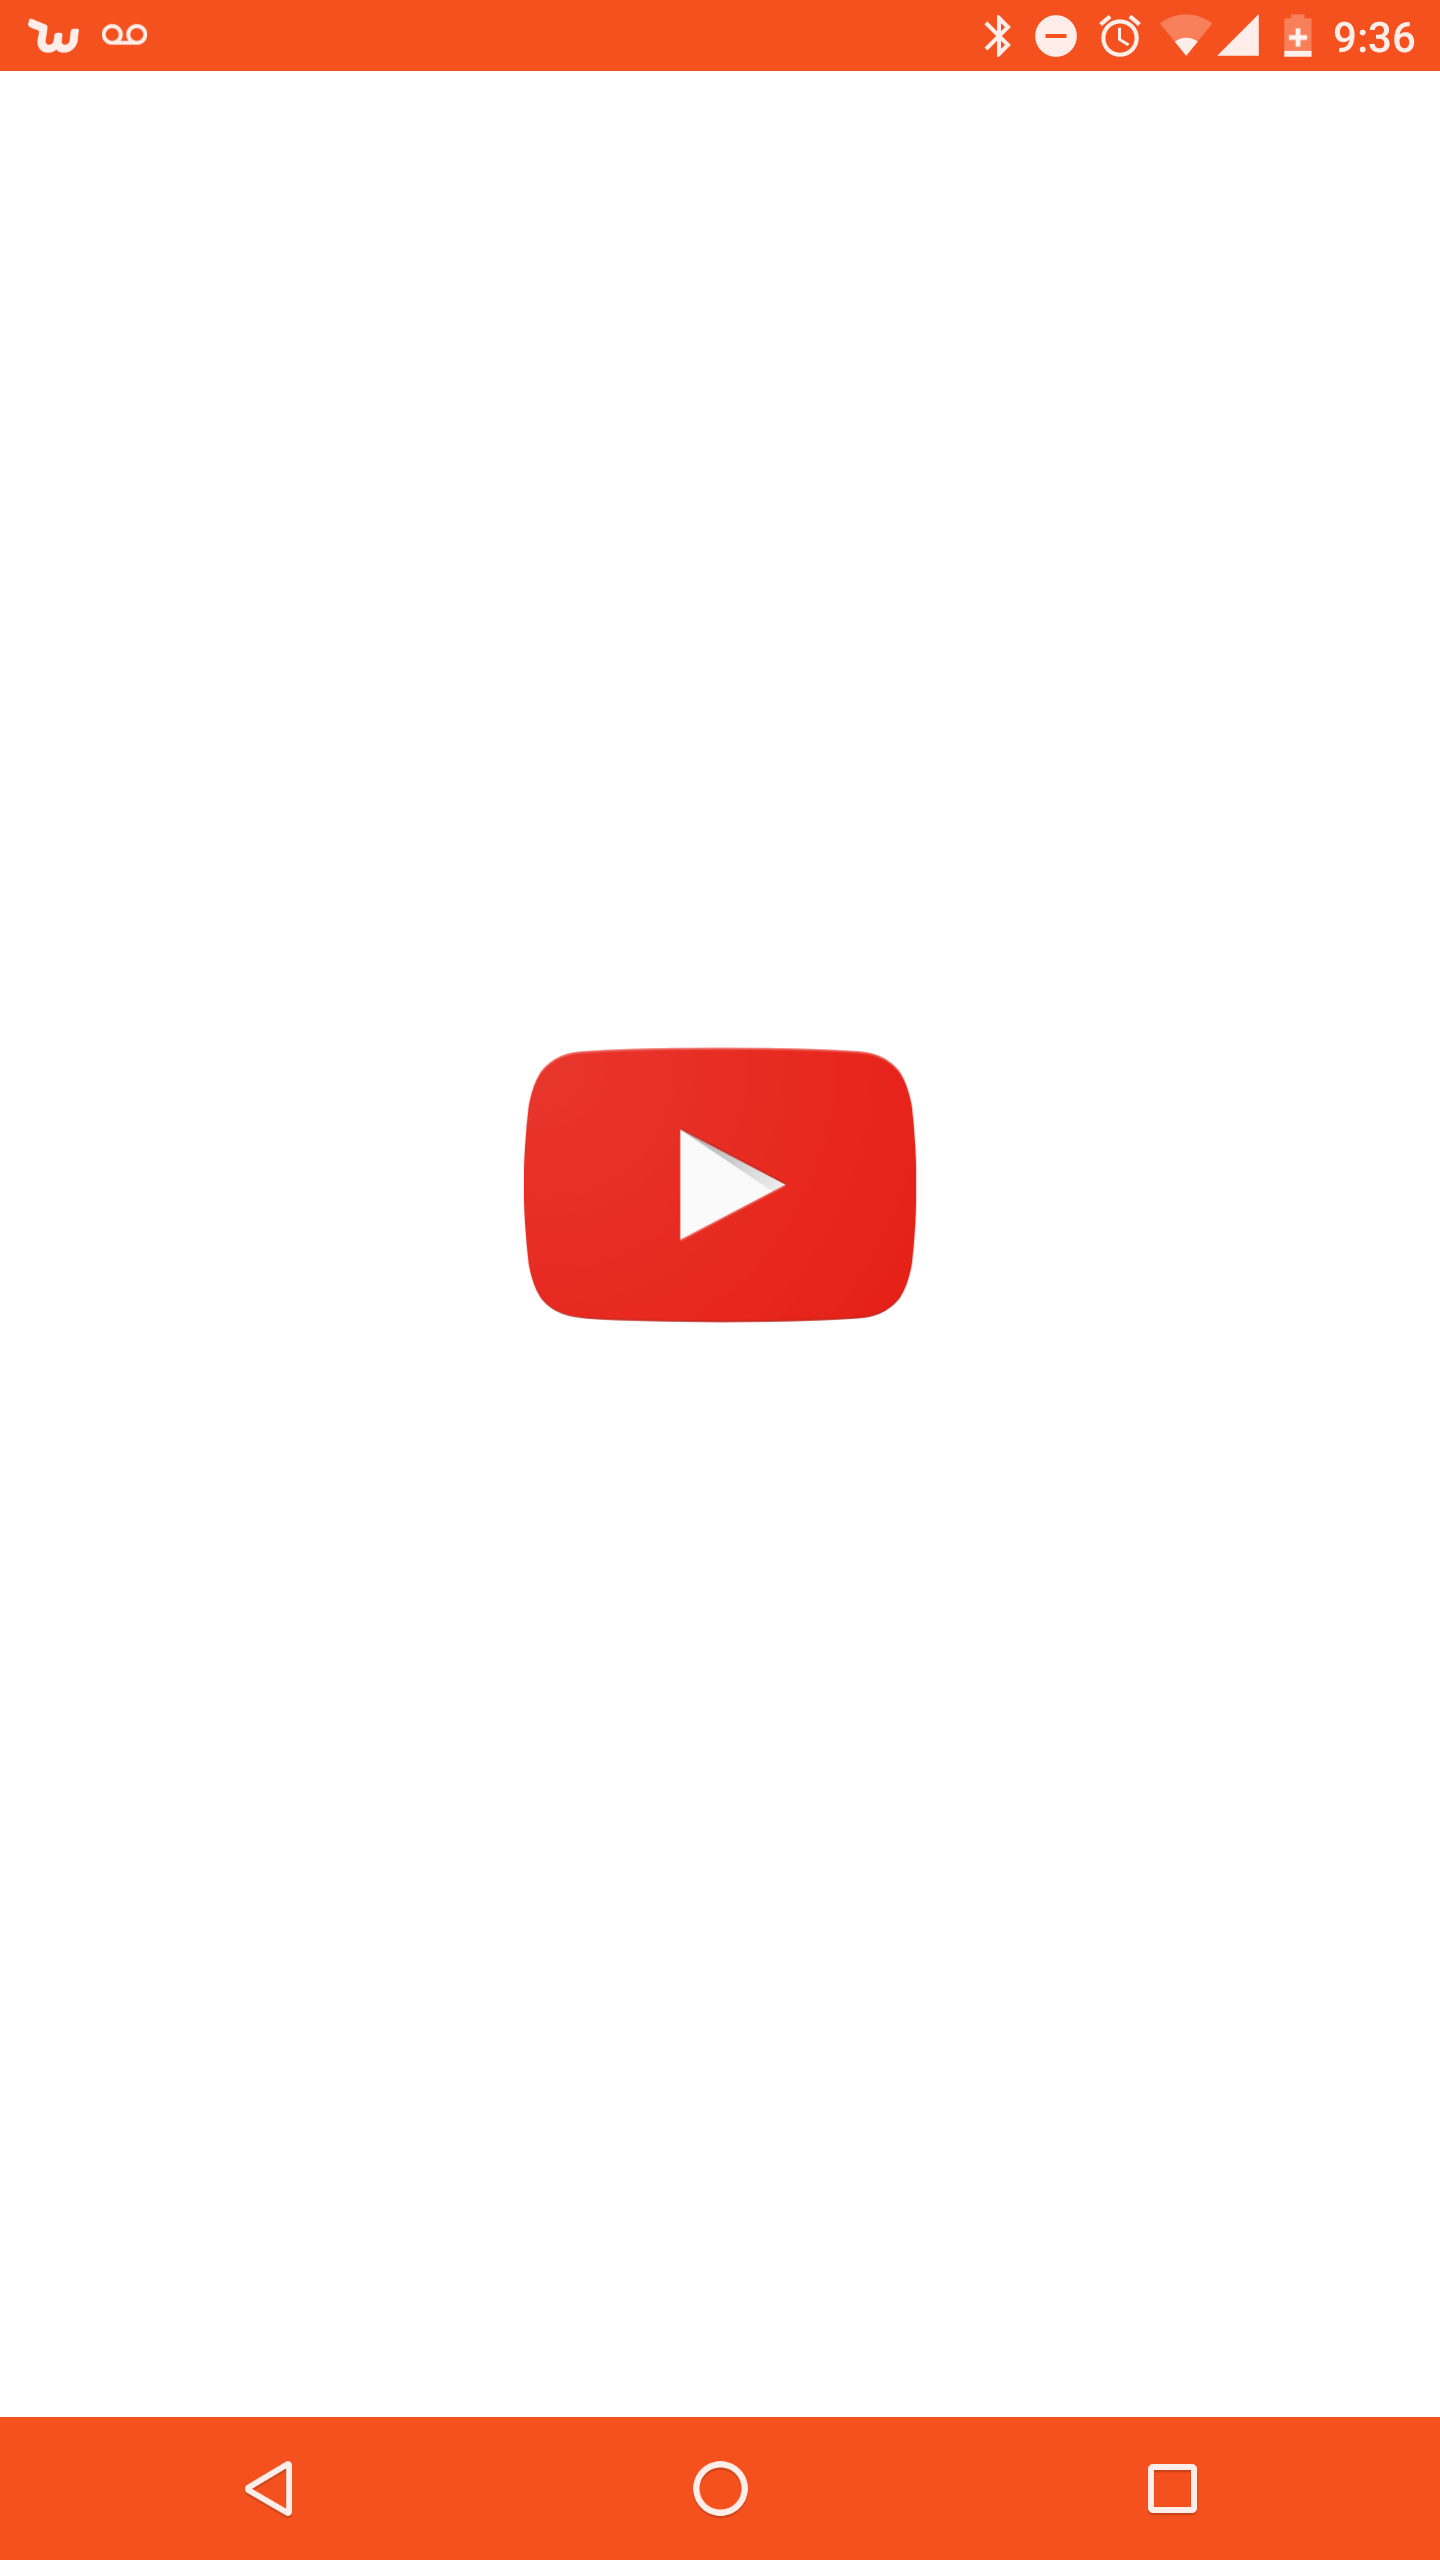 100,000 YouTube Views Start ASAP: Job For $35 By